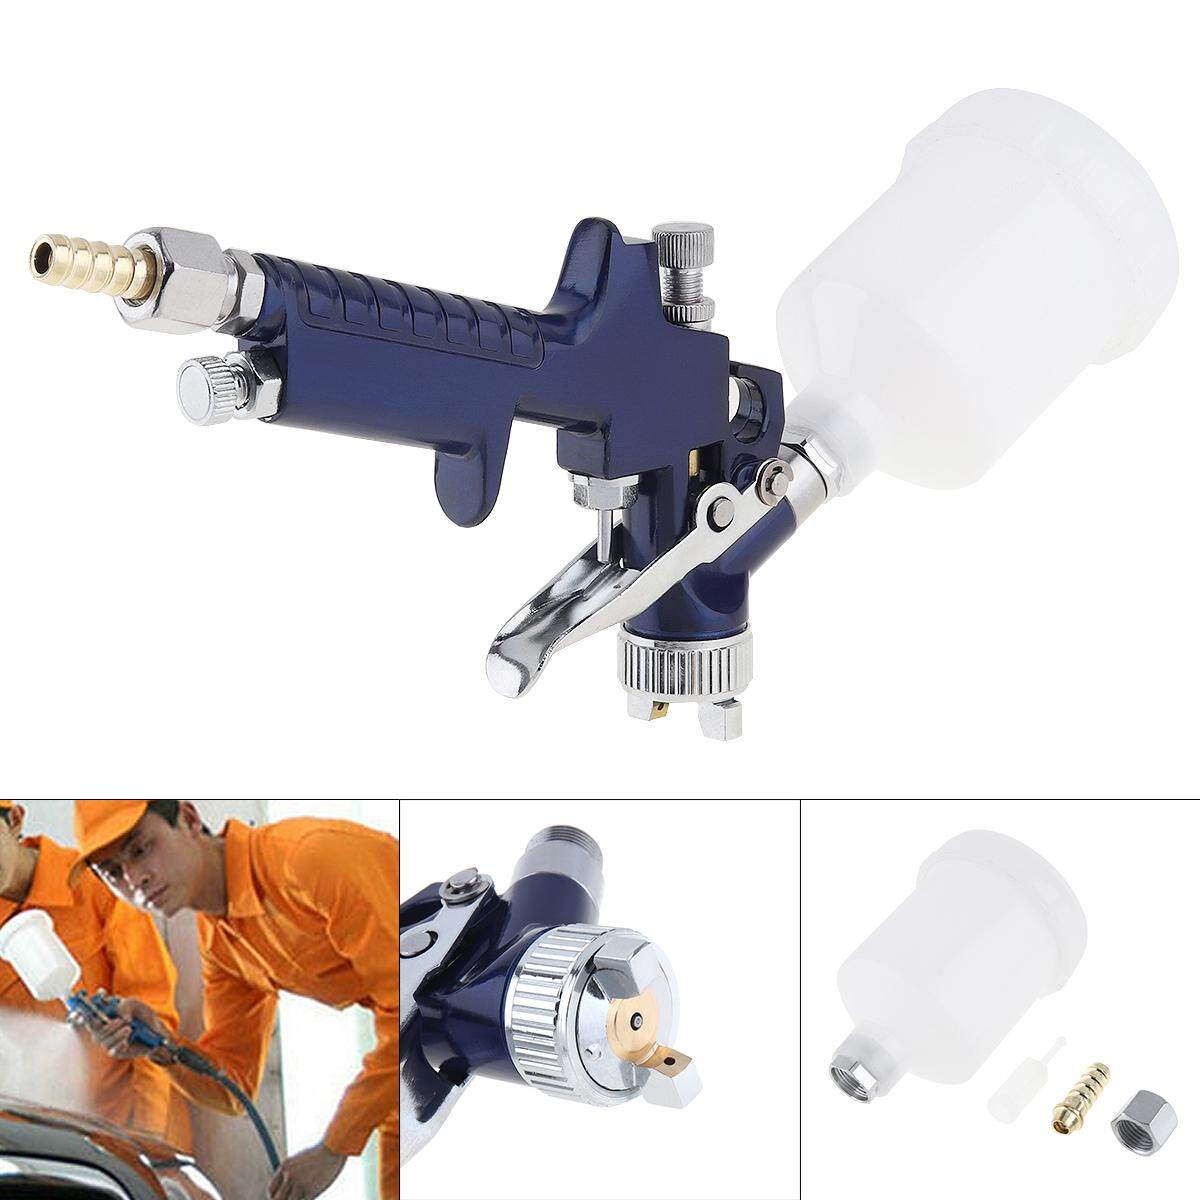 Mini Handle H-2000 Aluminum Alloy Pneumatic Spray Tool with 1.0mm Diameter Nozzle for Furniture / Car Painting